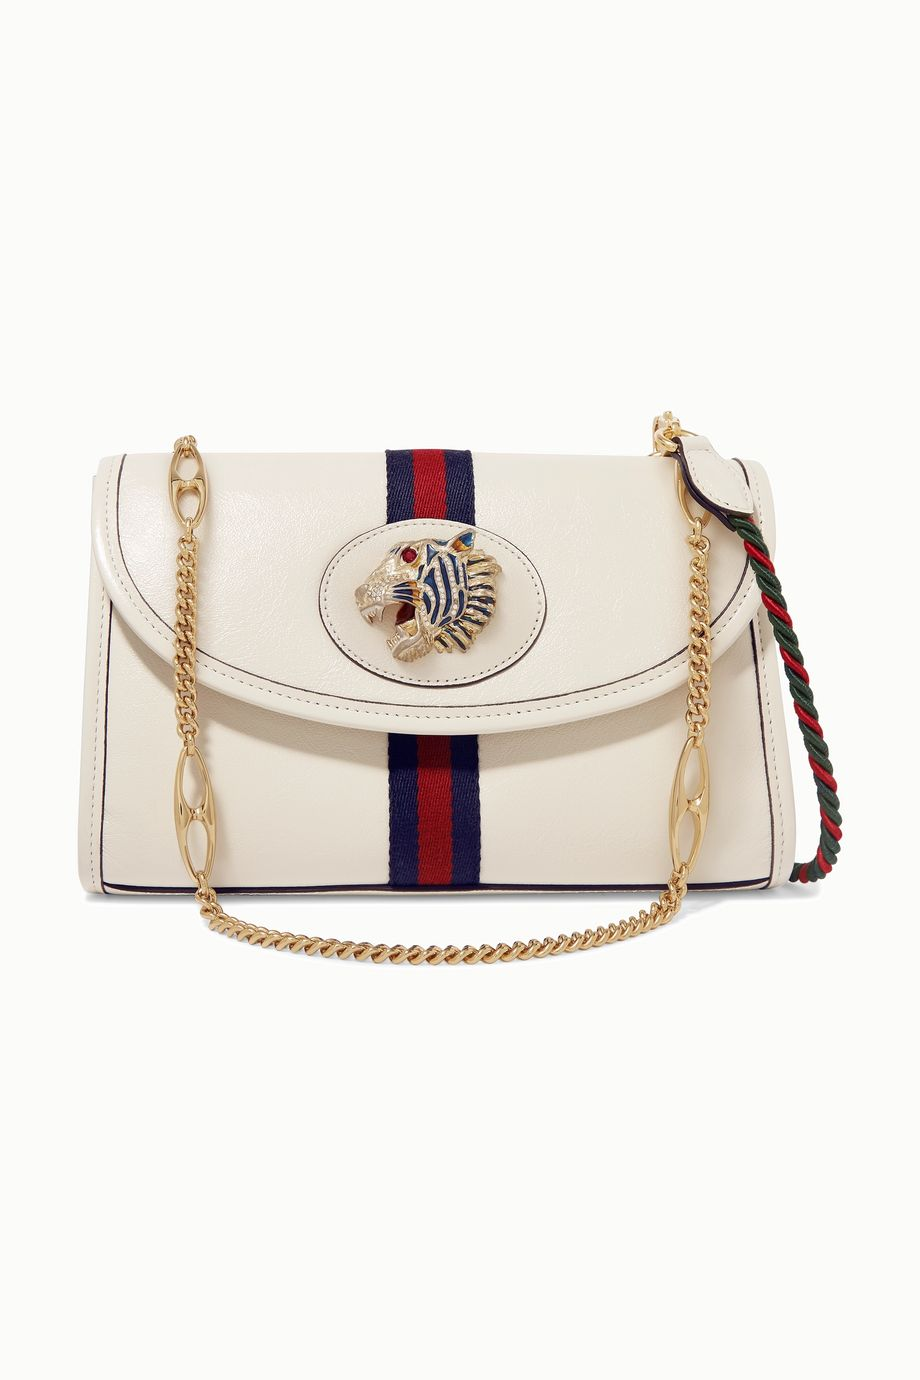 Gucci Rajah small embellished leather shoulder bag